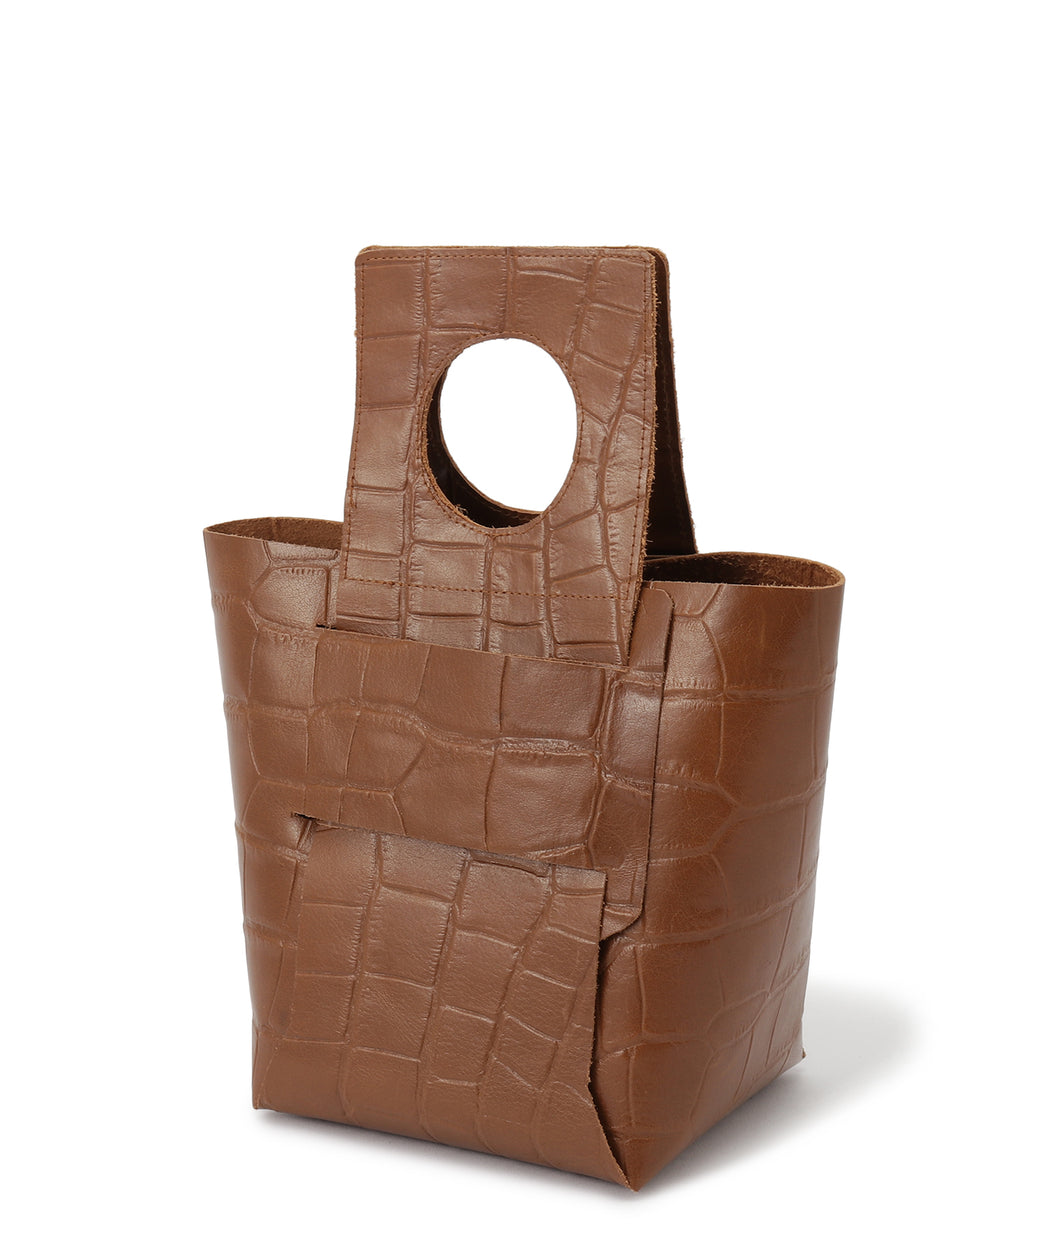 Folding bag (croc-effect leather)